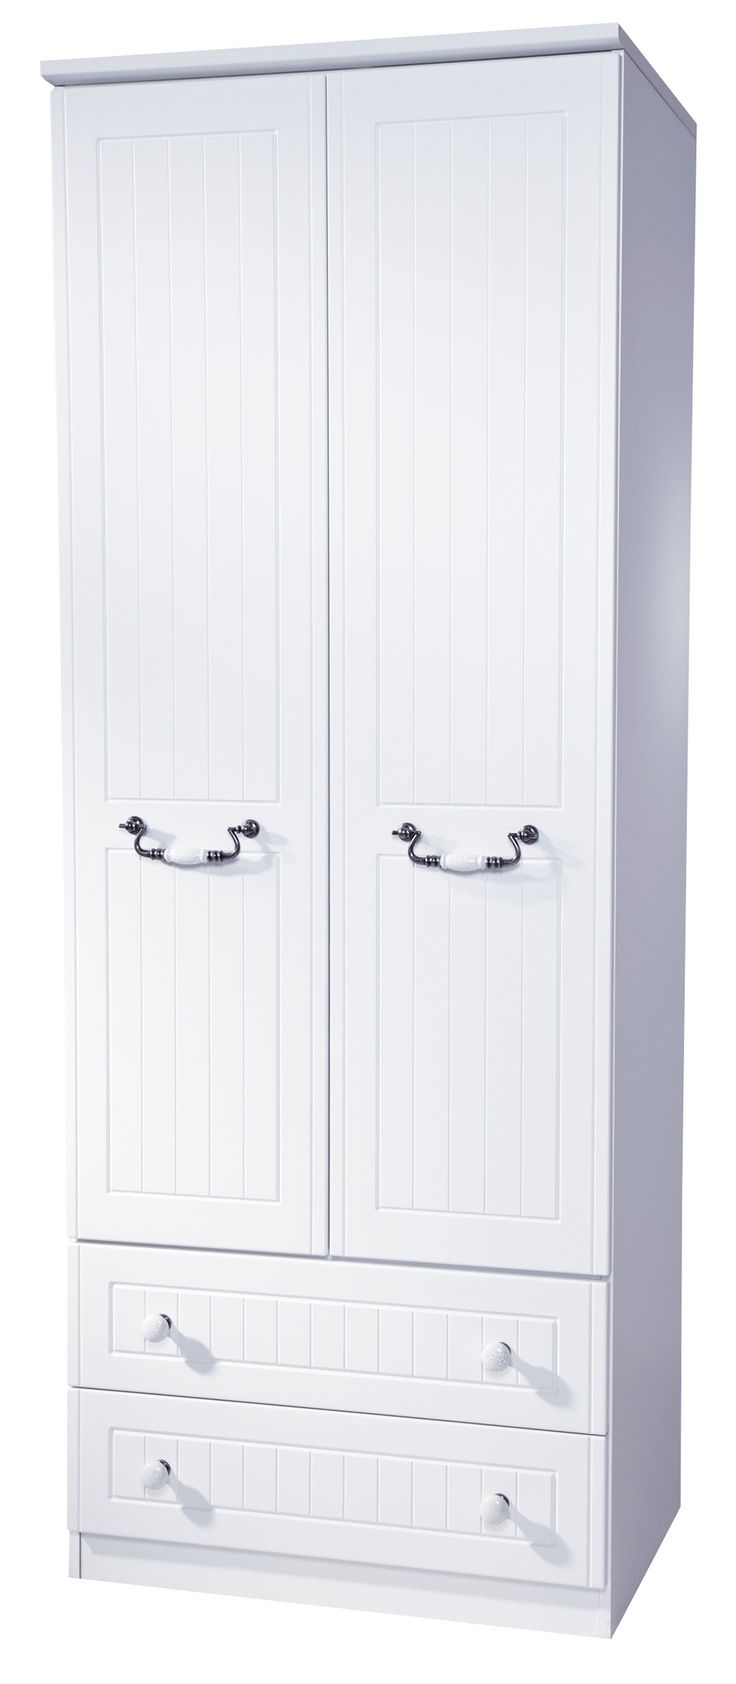 #Coniston 2 Door, 2 #Drawer #Wardrobe (available in 2 colour finishes)